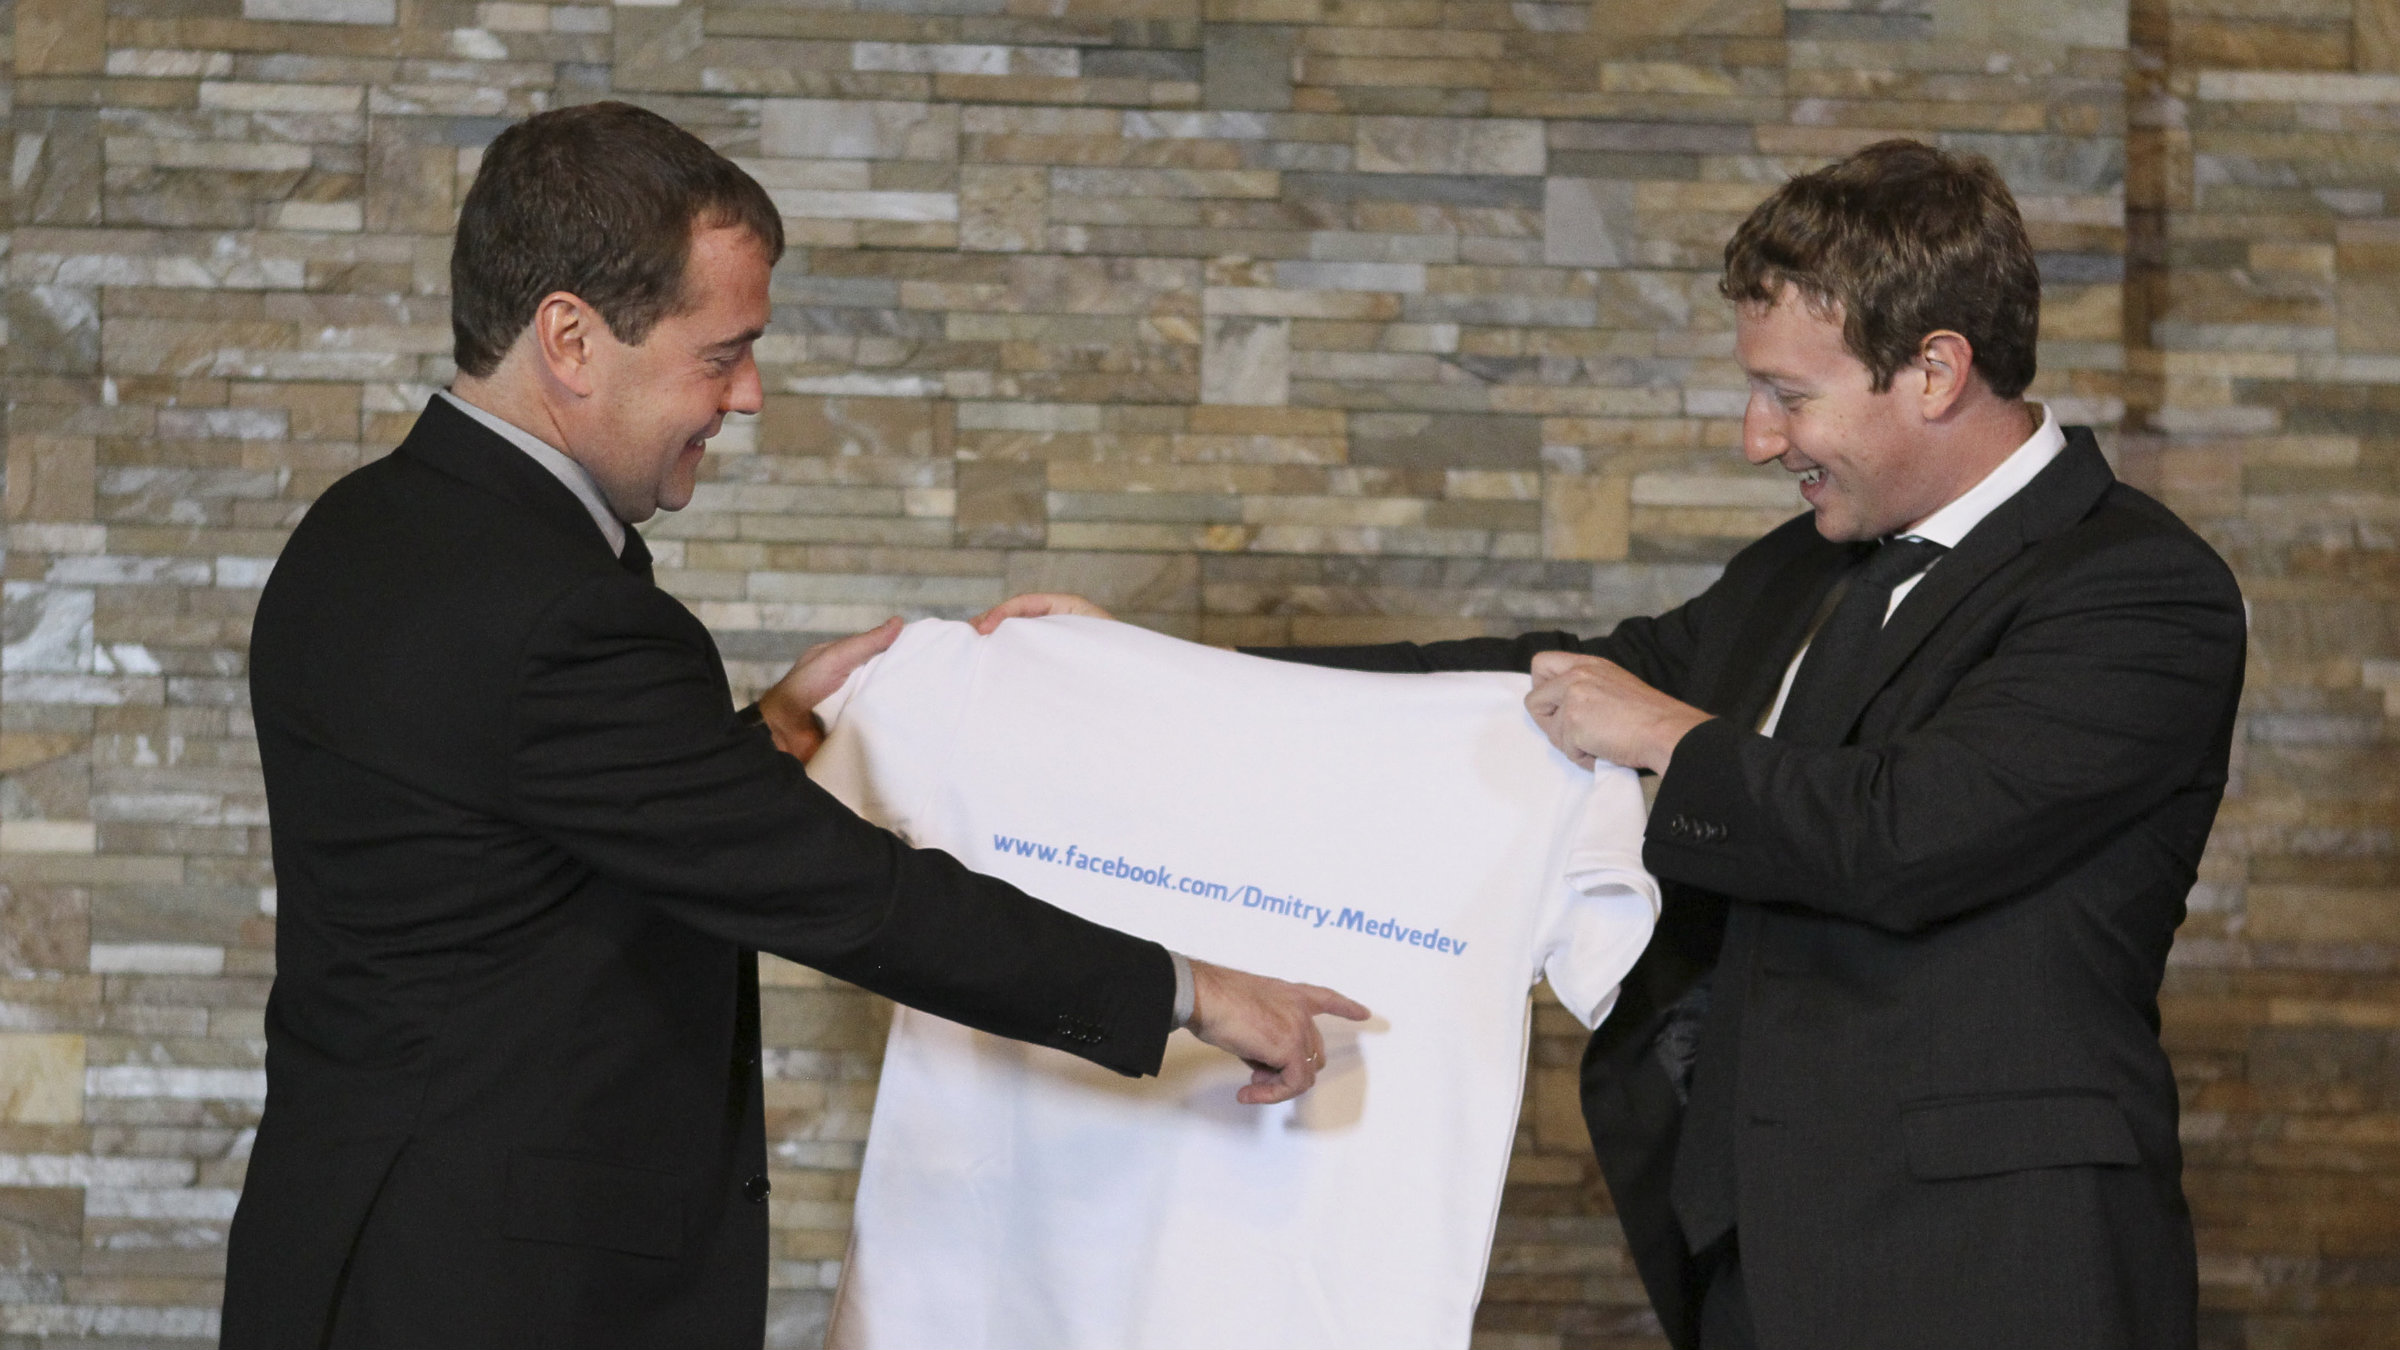 The way to Dmitry Medvedev's heart is through an oversize t-shirt.